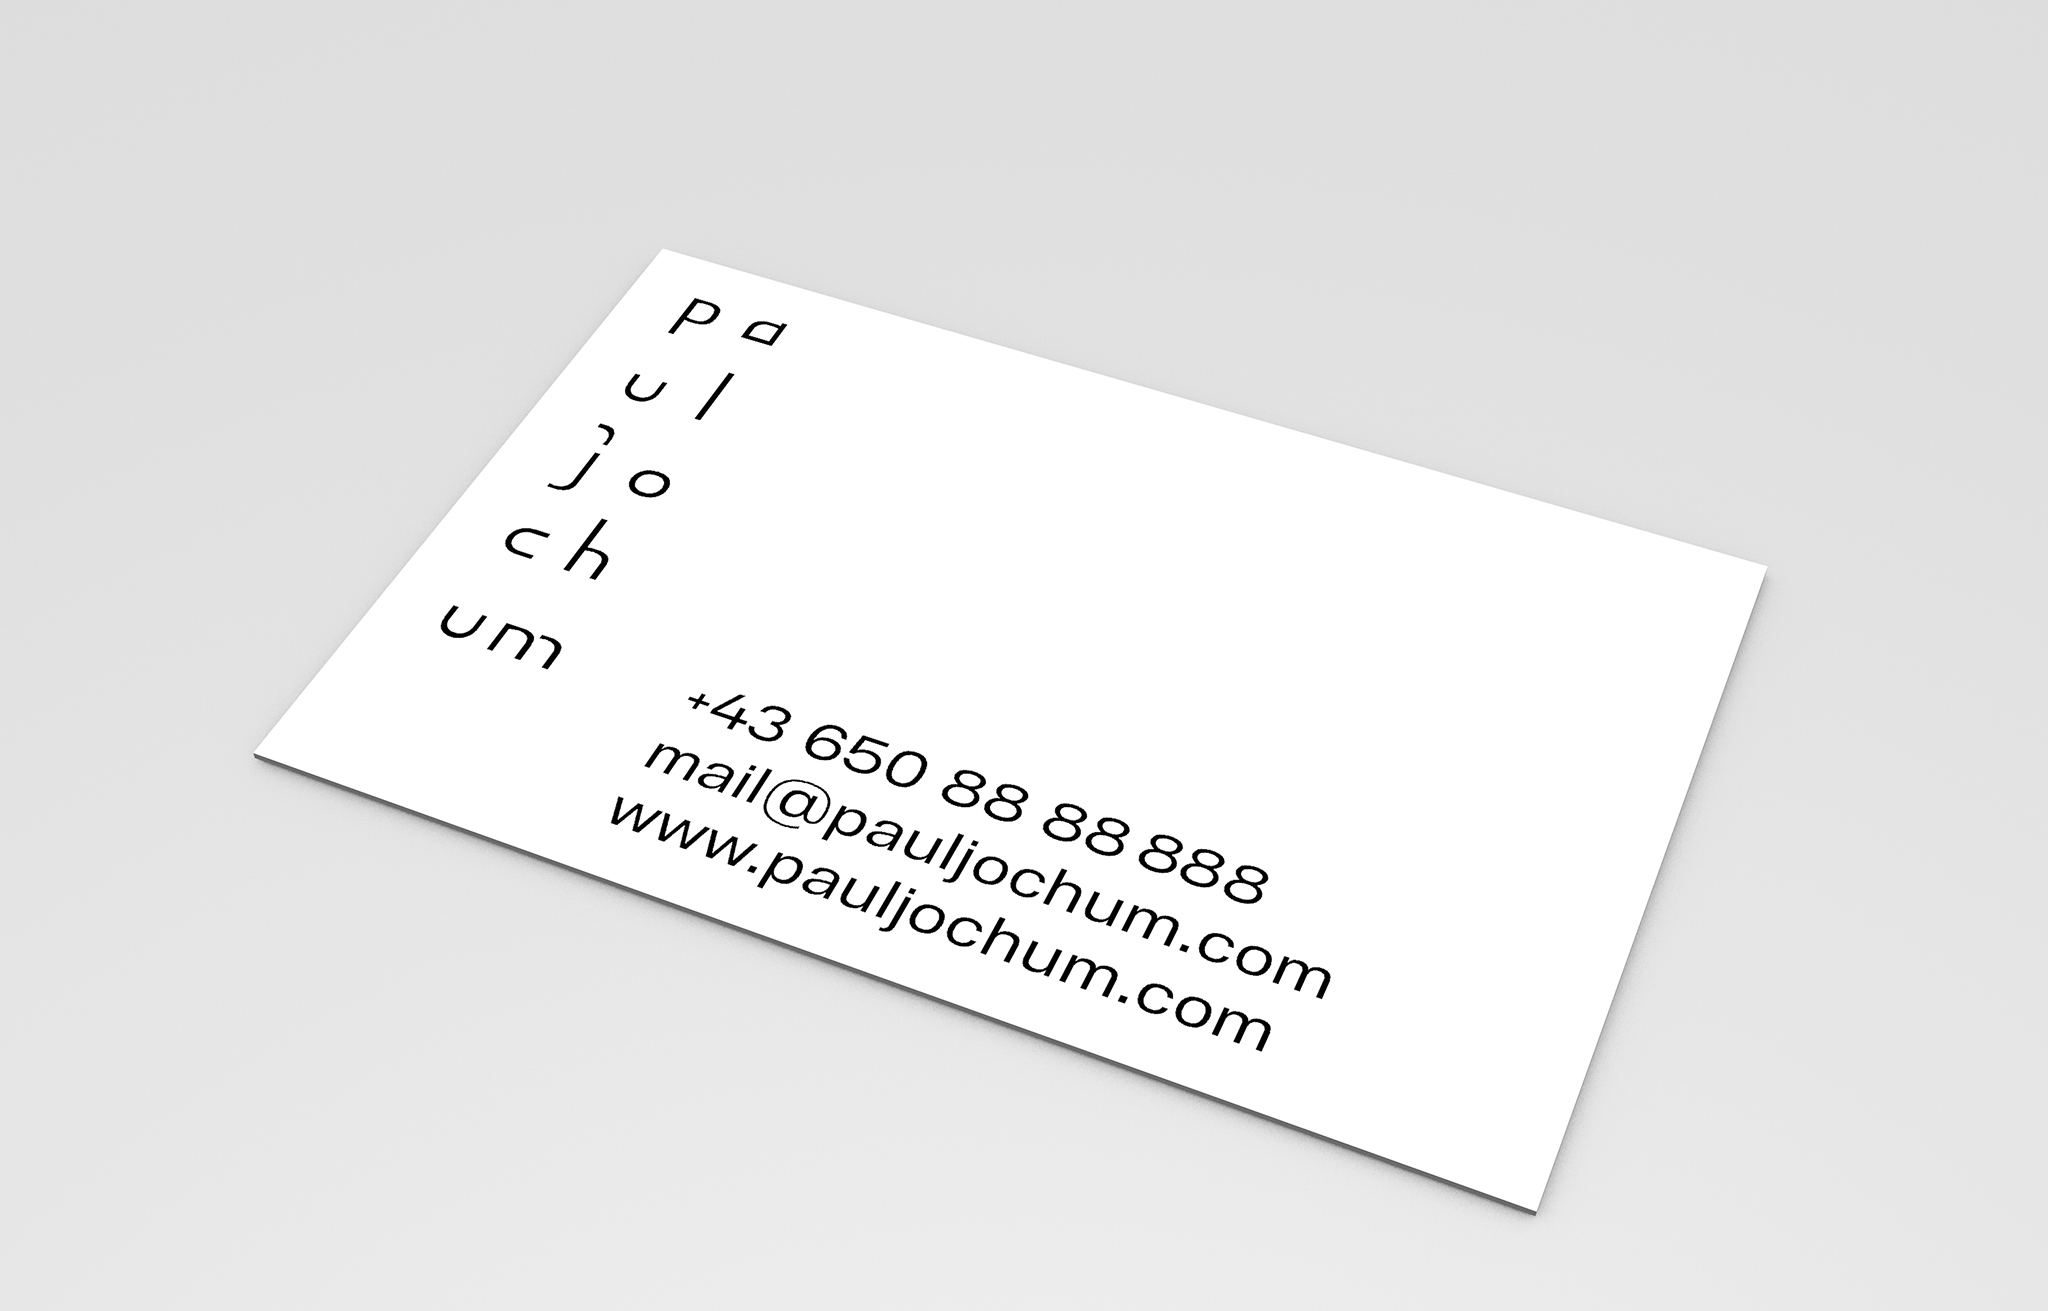 Daniel-Stuhlpfarrer_Visual-Communication_Graphic-Design_Corporate-Identity-Paul-Jochum_2_Business-Card